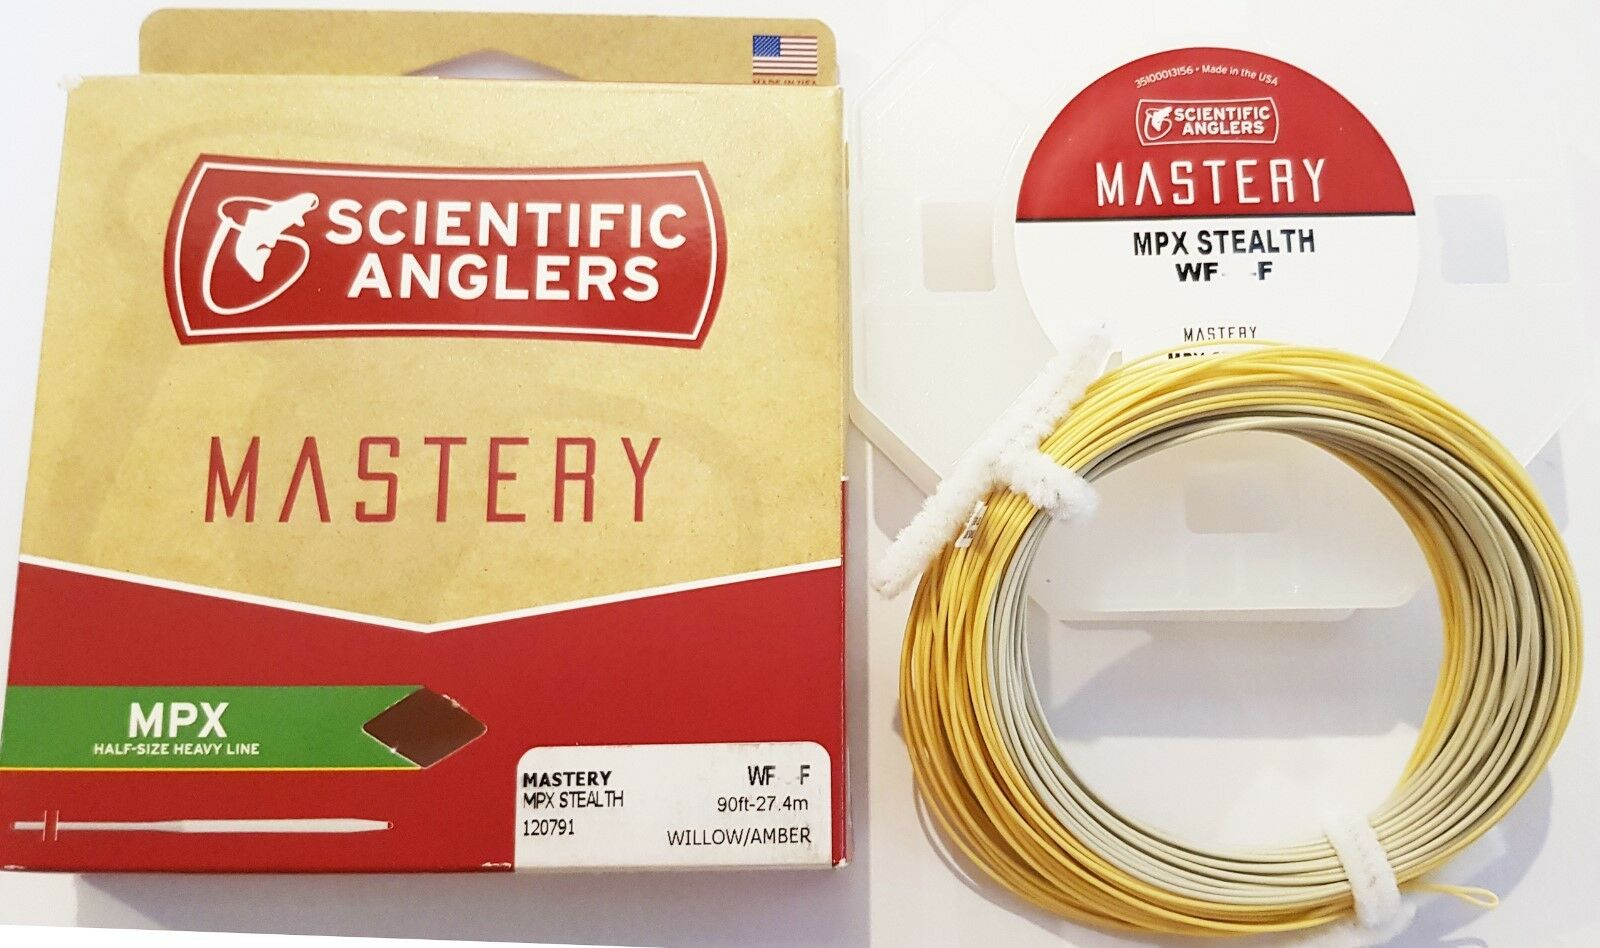 3M Scientific Anglers Mastery MPX WF-4-Floating - Neu